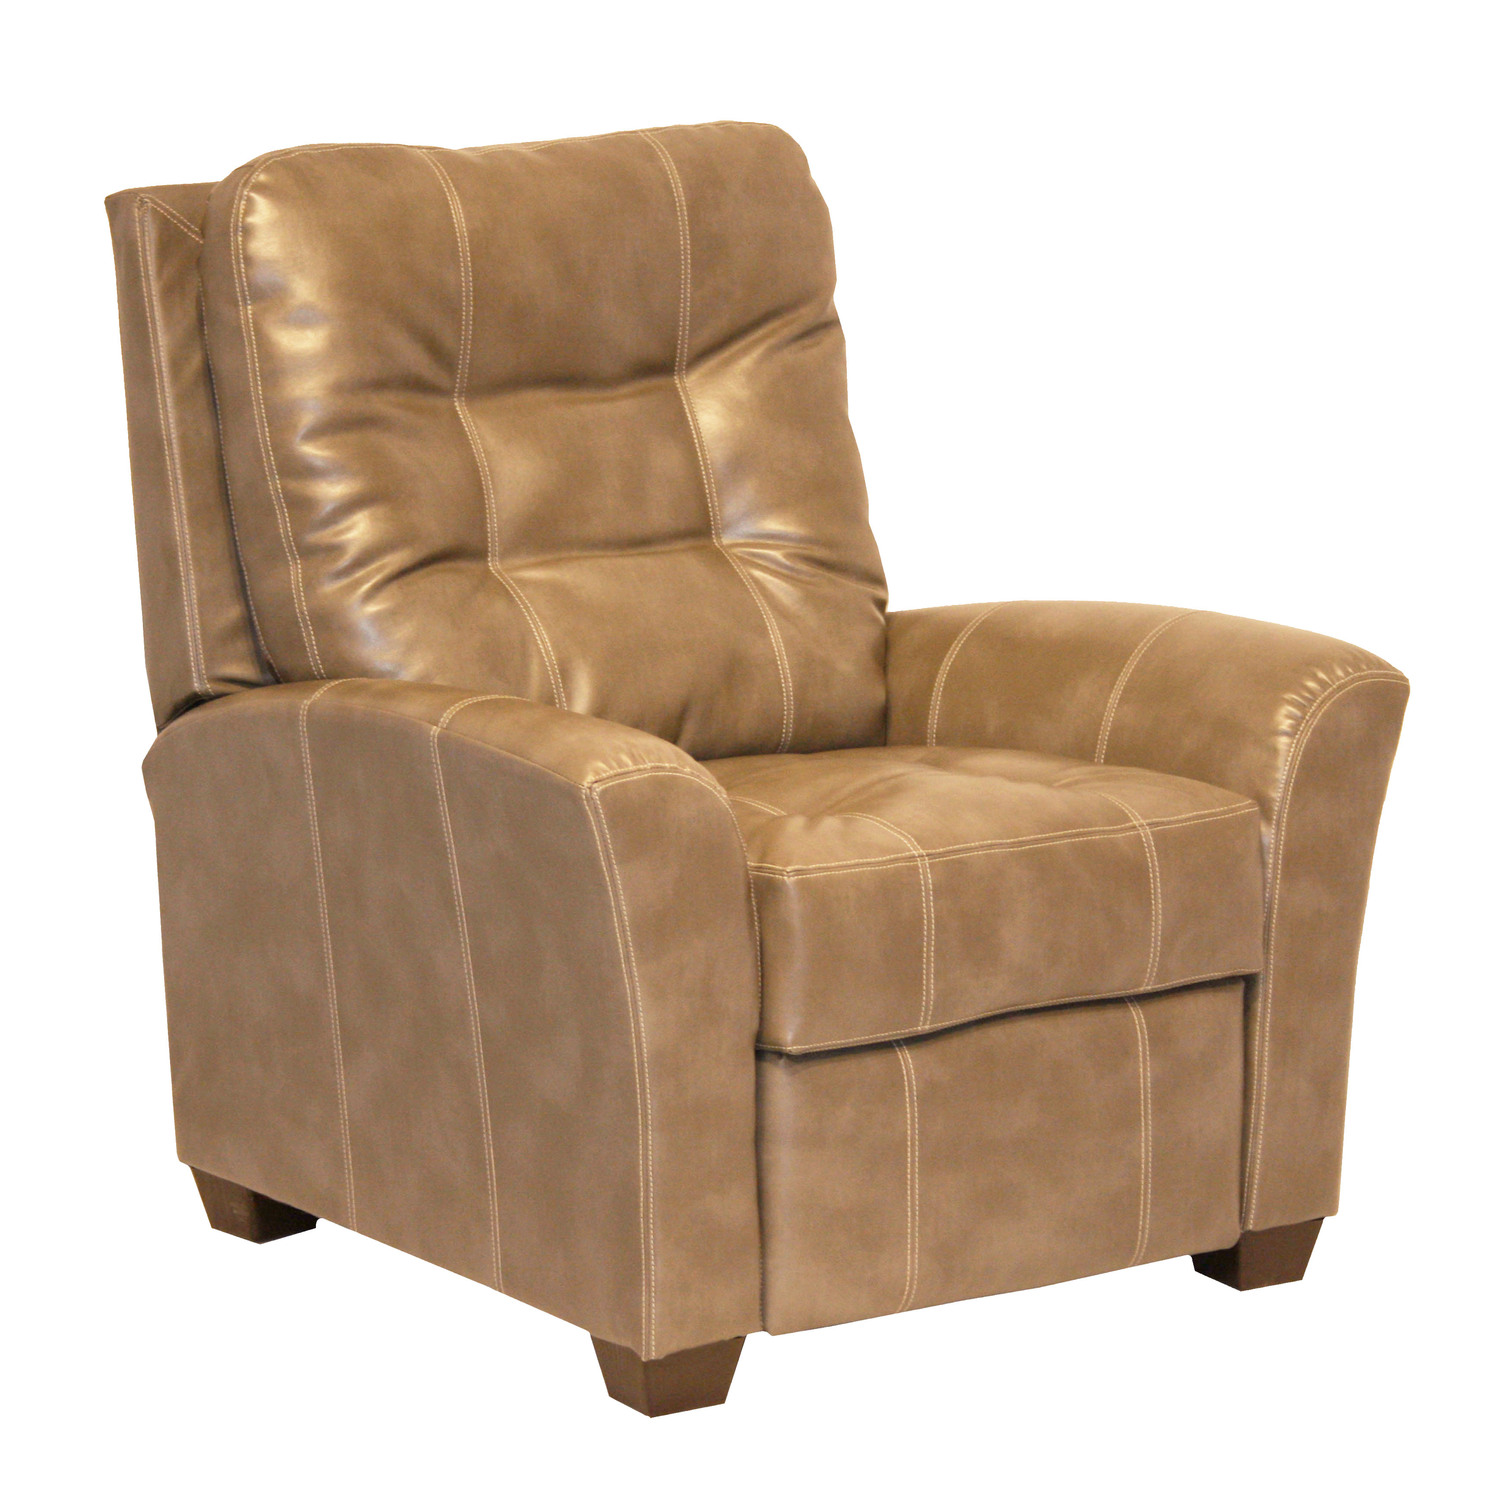 Catnapper Chair Catnapper Cooper Leather Recliner By Oj Commerce 539 00